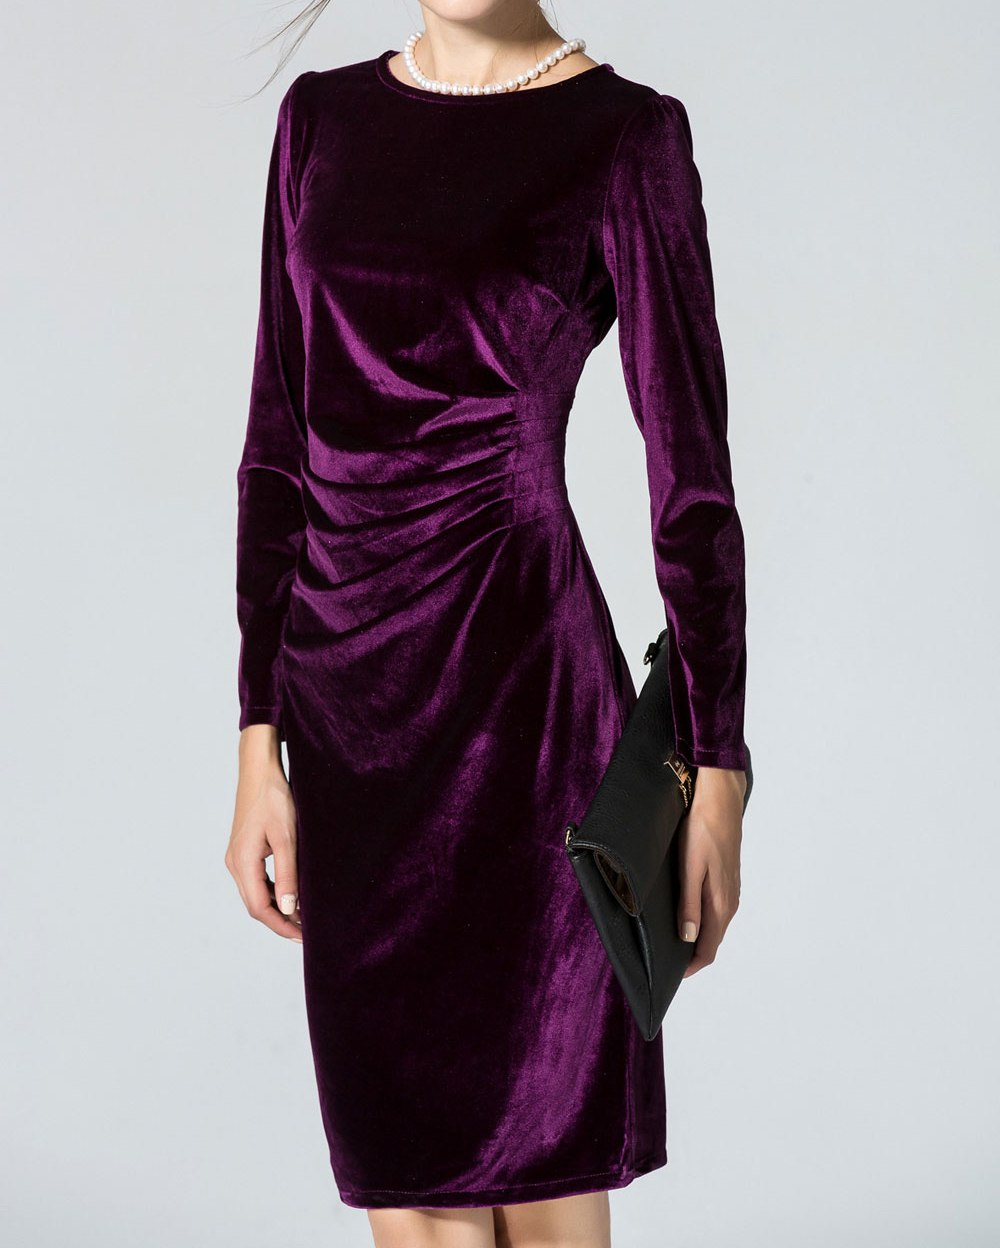 KETTYMORE WOMENS LONG SLEEVED ROUND-NECK SLIM VELVET PLEATED WINTER DRESS PURPLE - Kettymore